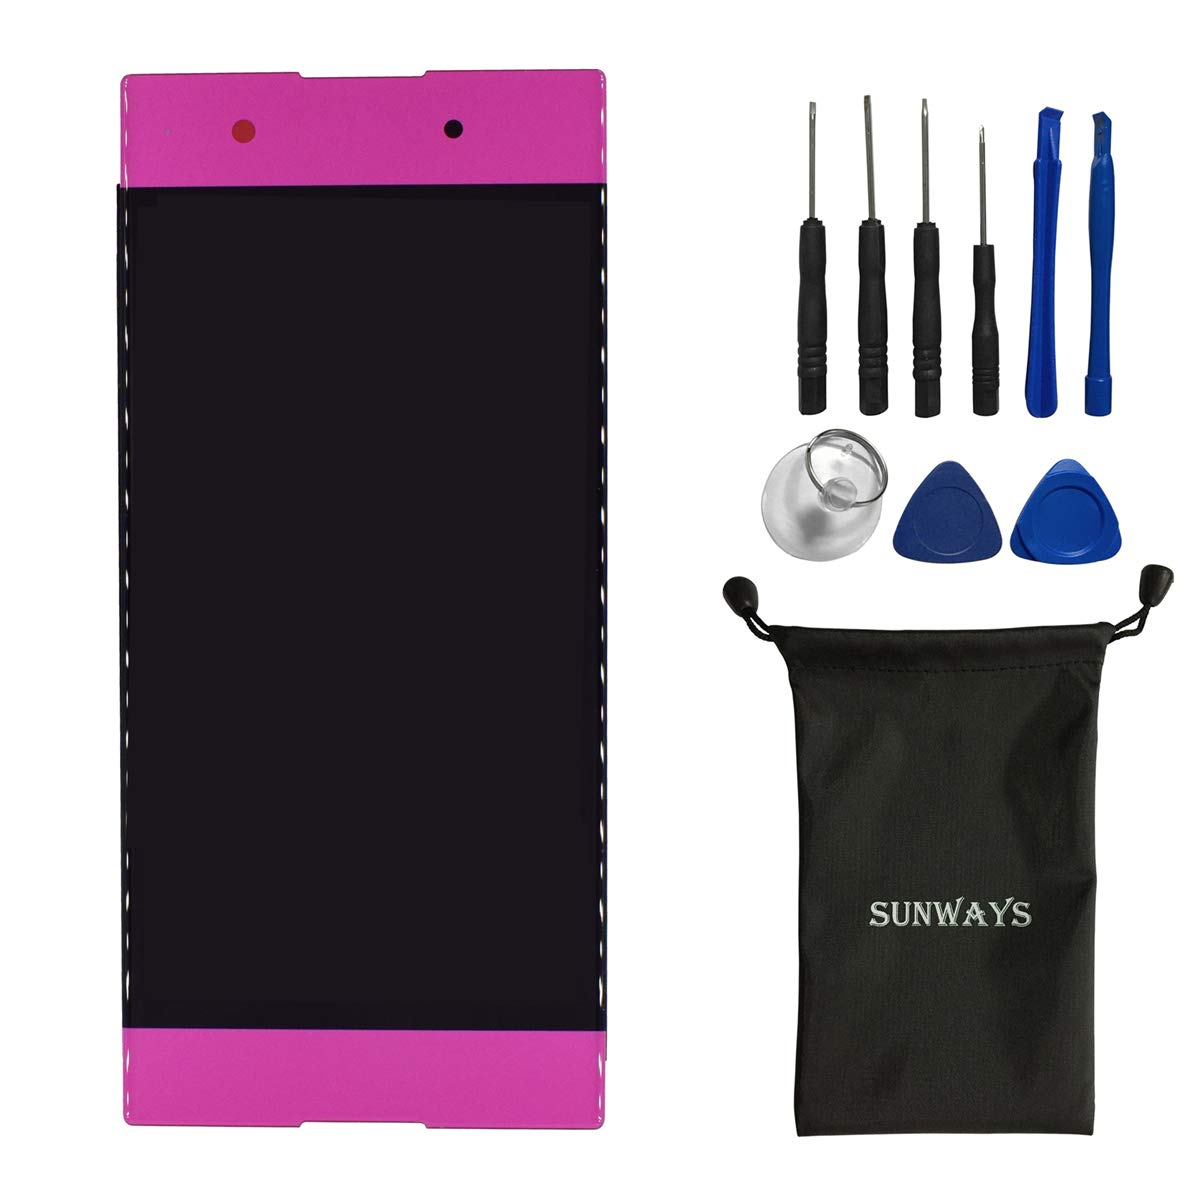 Sunways Complete LCD Display Touch Digitizer Screen Replacement for Sony Xperia XA1 Plus G3416 Pink by sunways